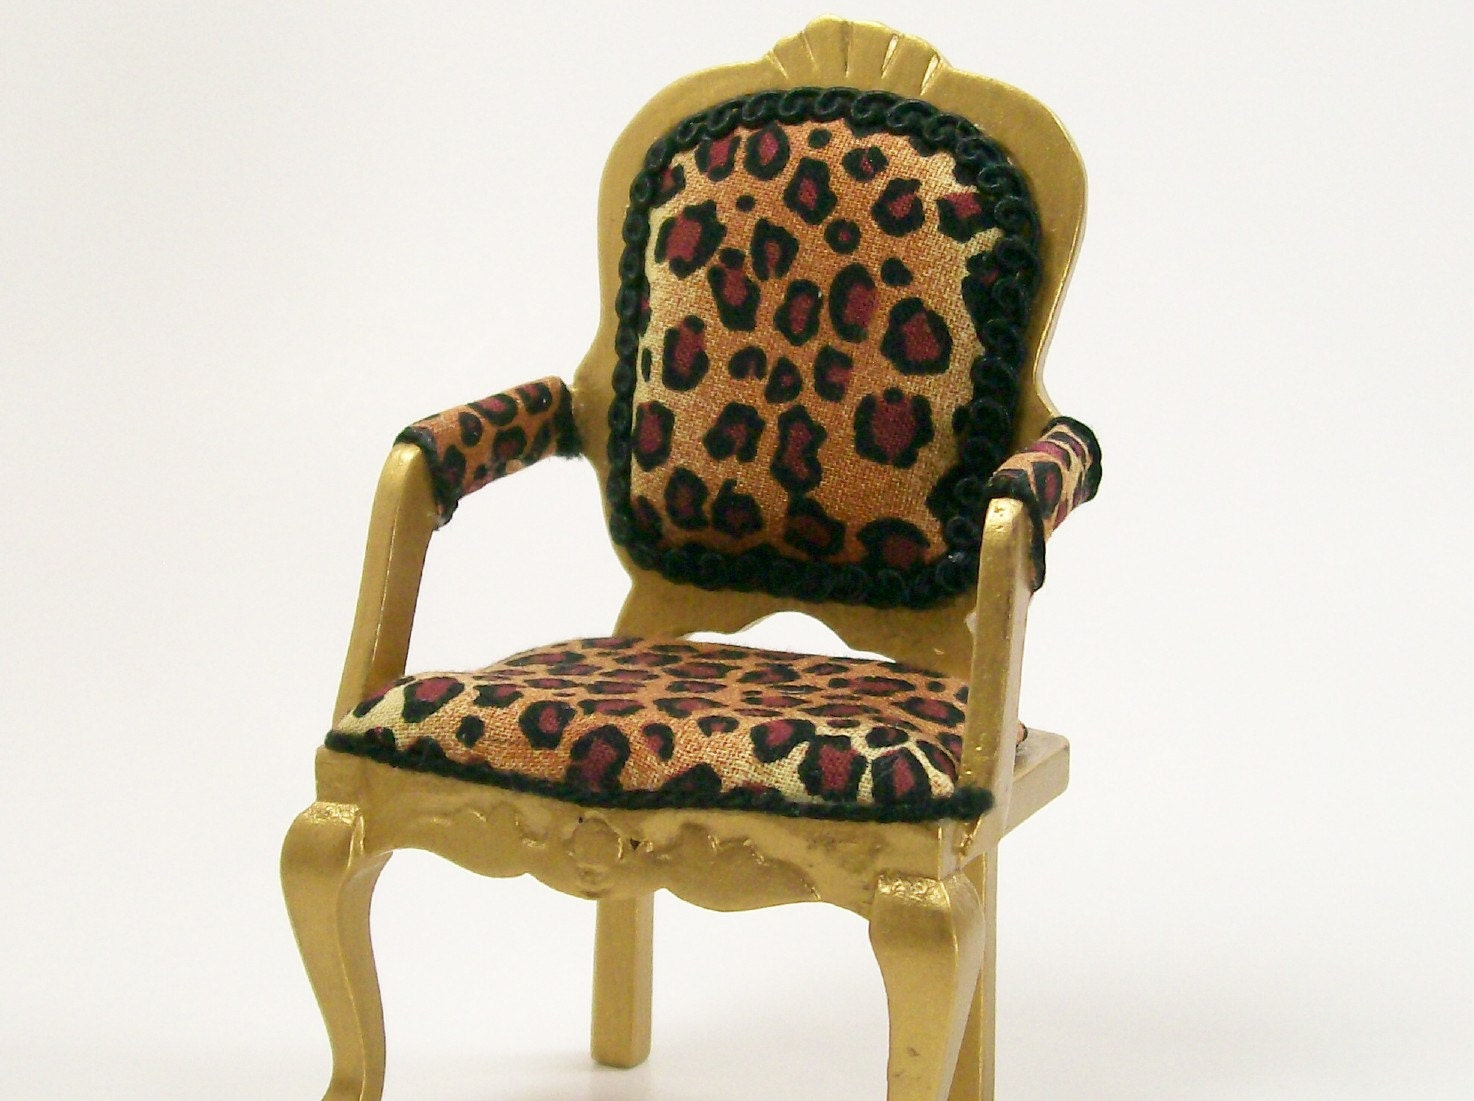 Leopard Print Chair Gold Upholstered Furniture 1 12 Dollhouse